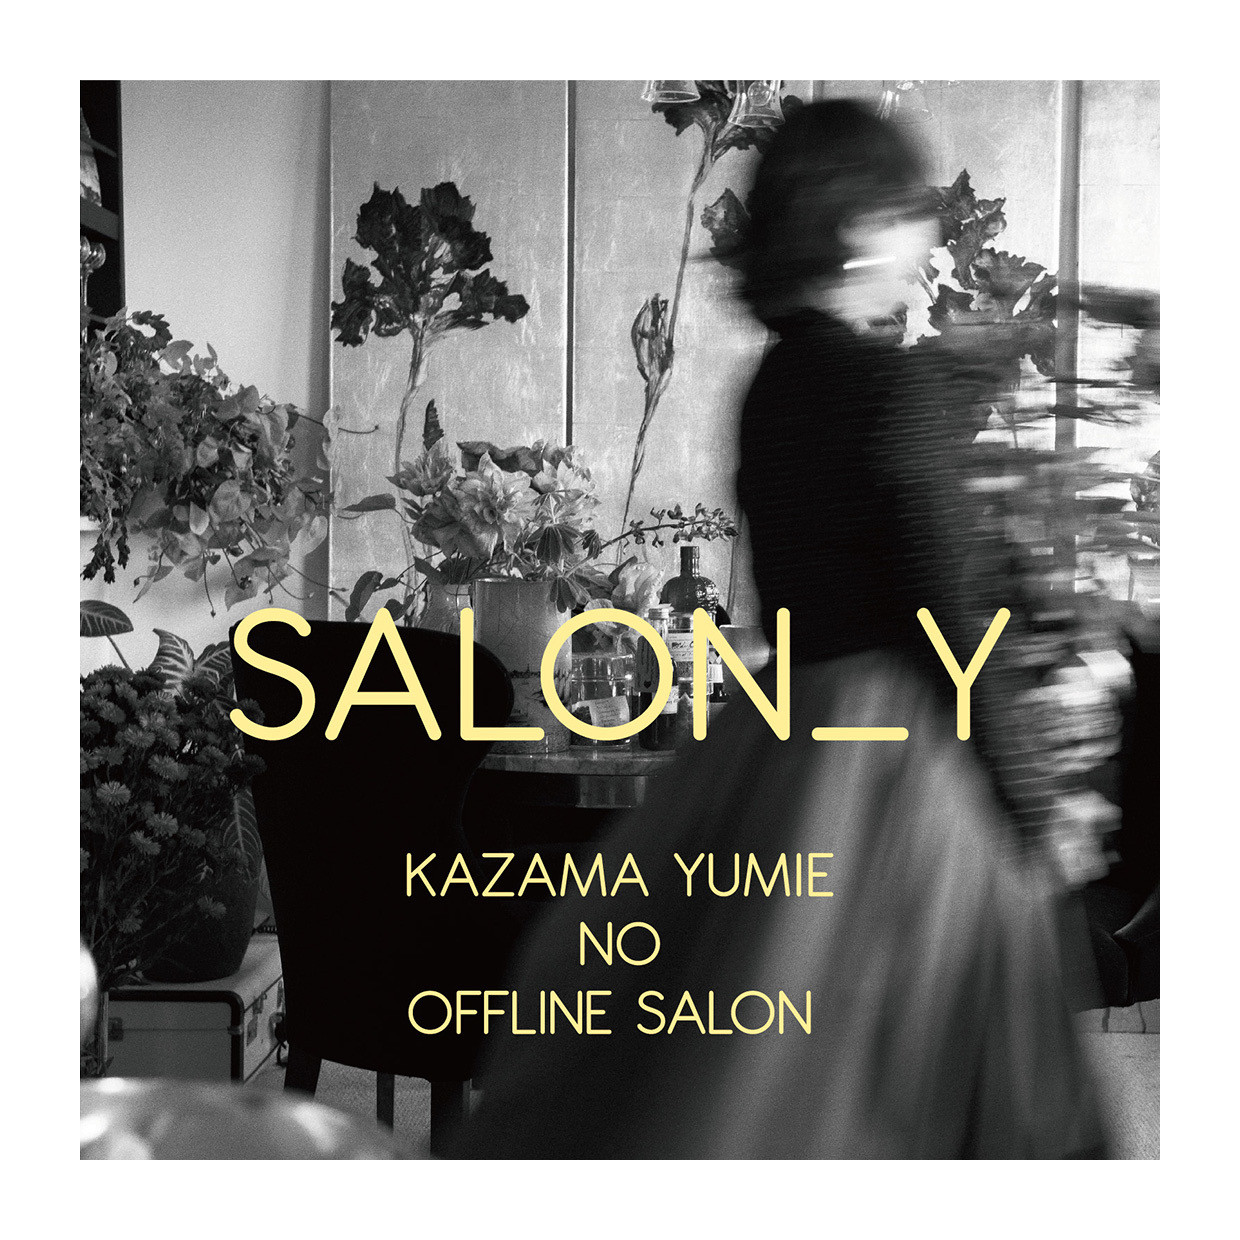 風間 ゆみえの POP UP SHOP 「 SALON_Y 」が OPEN!